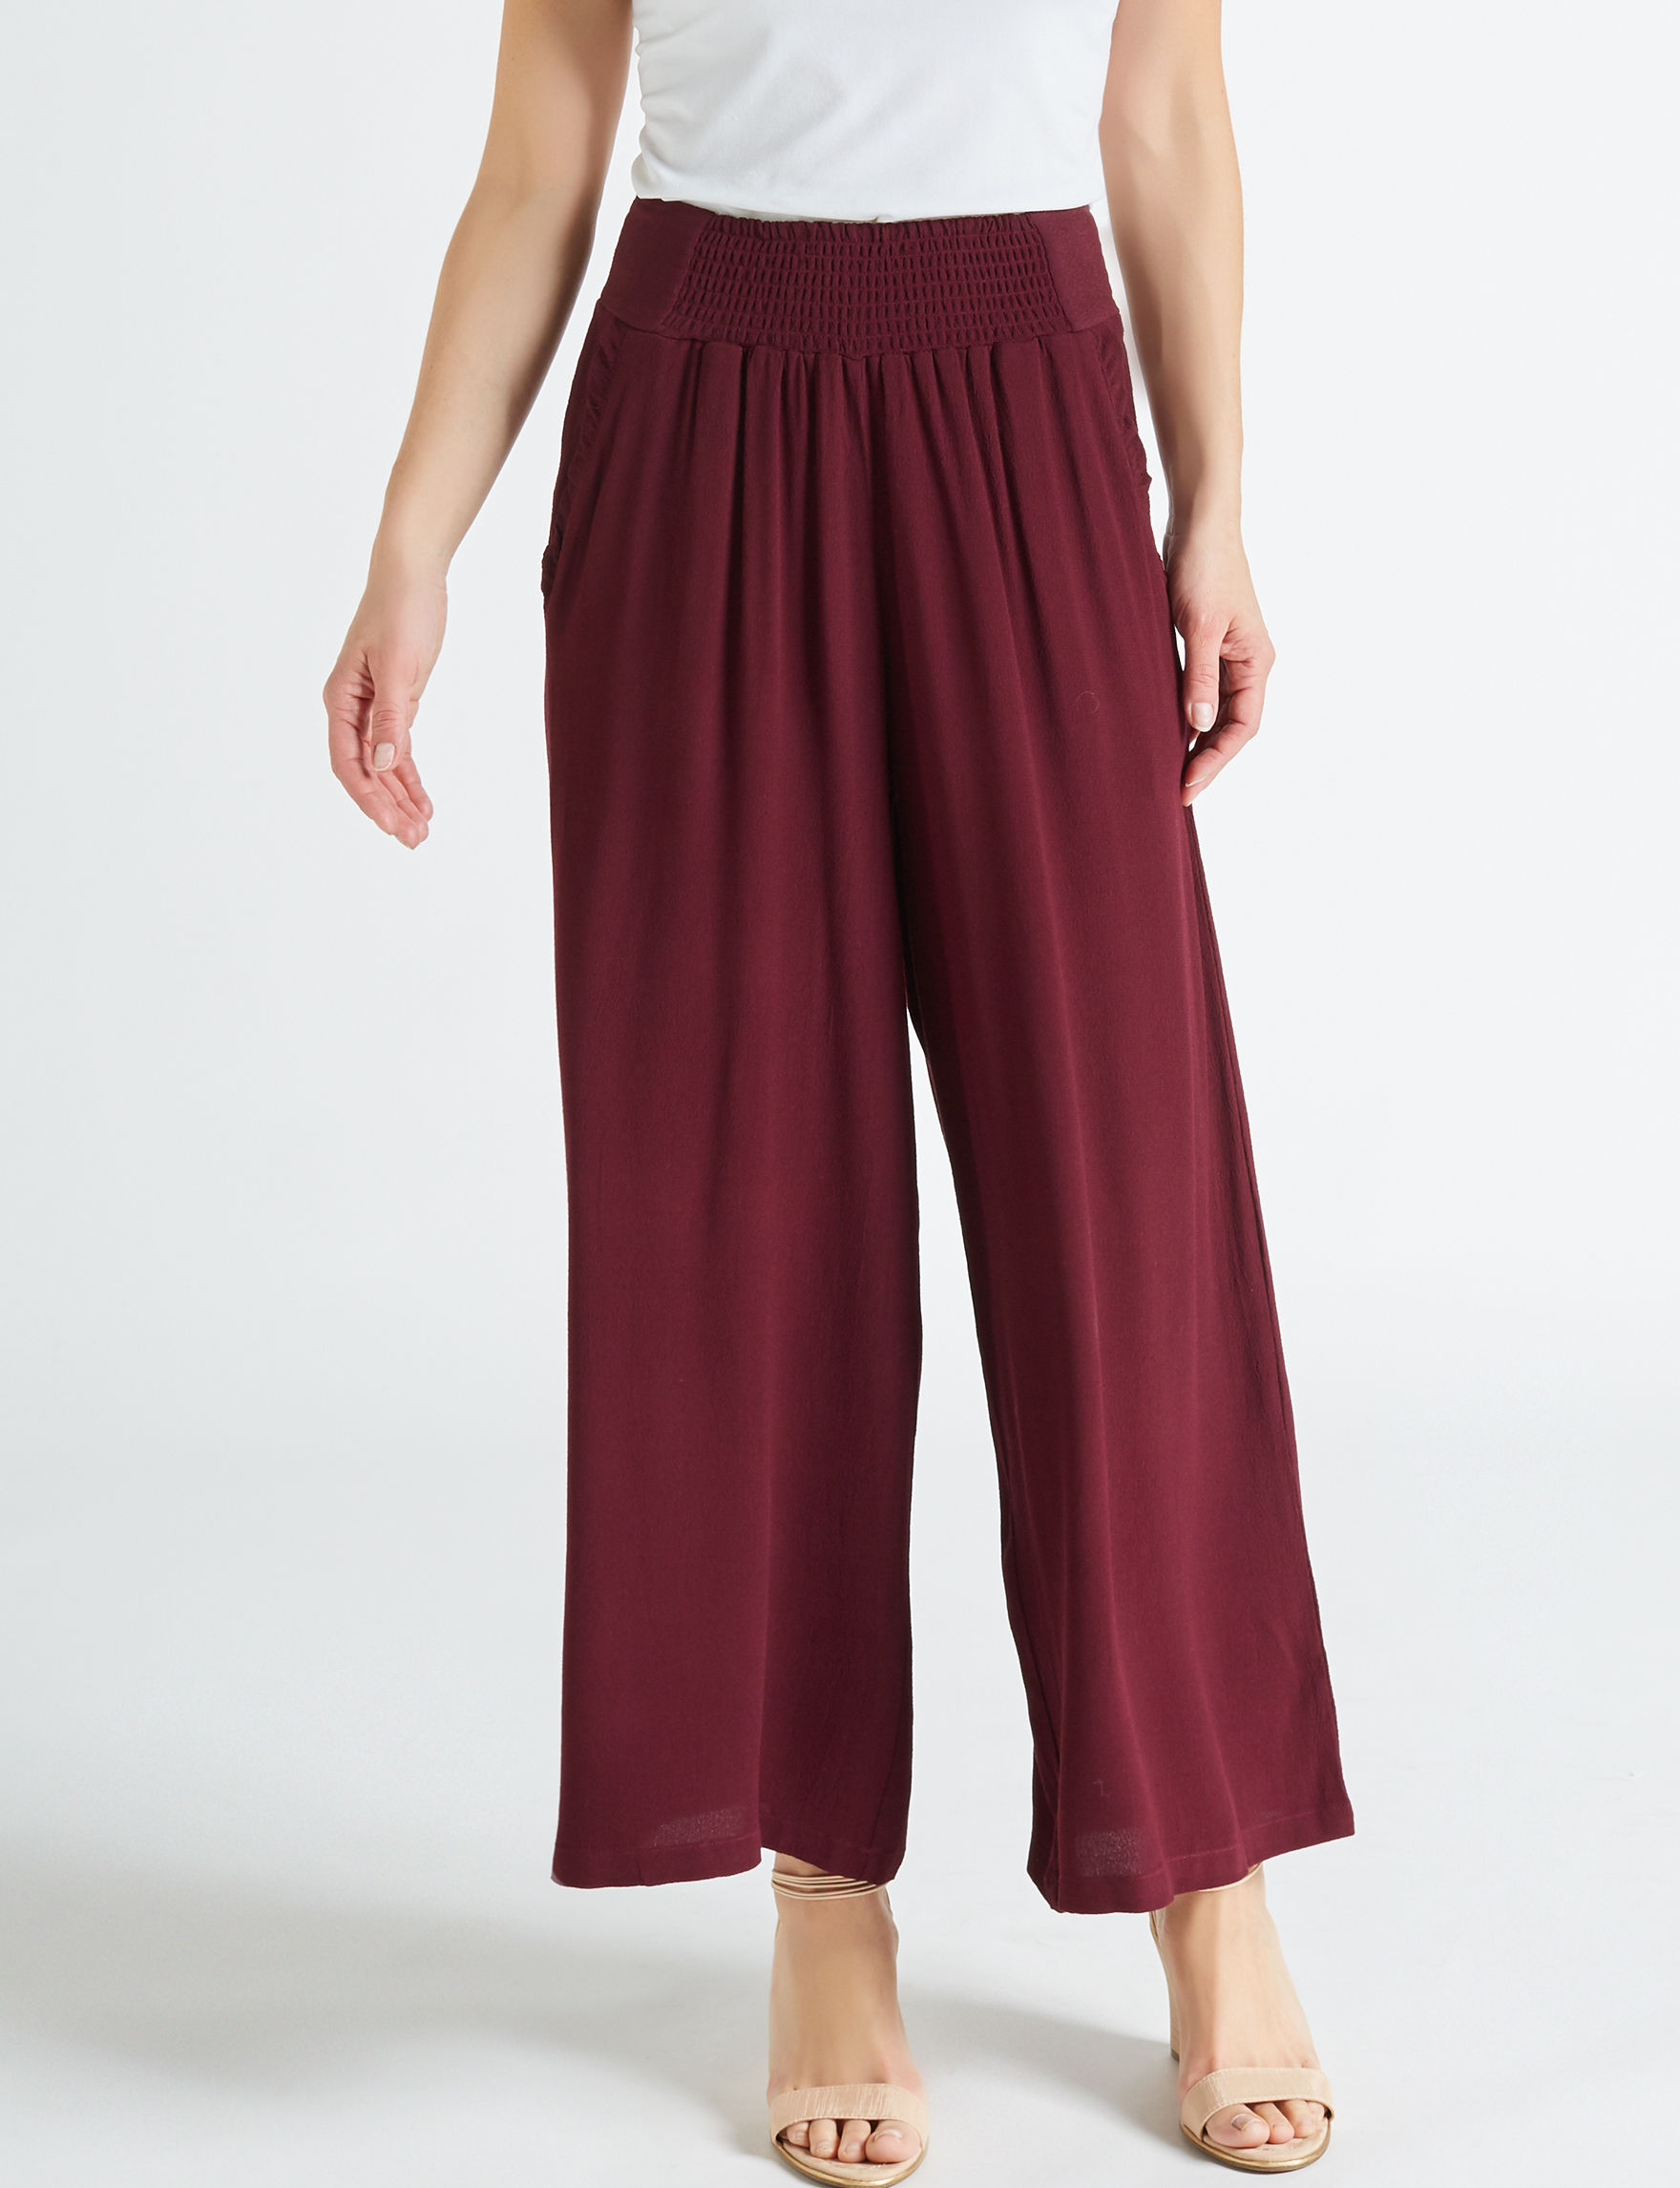 C + J Collections Burgundy Wide Leg